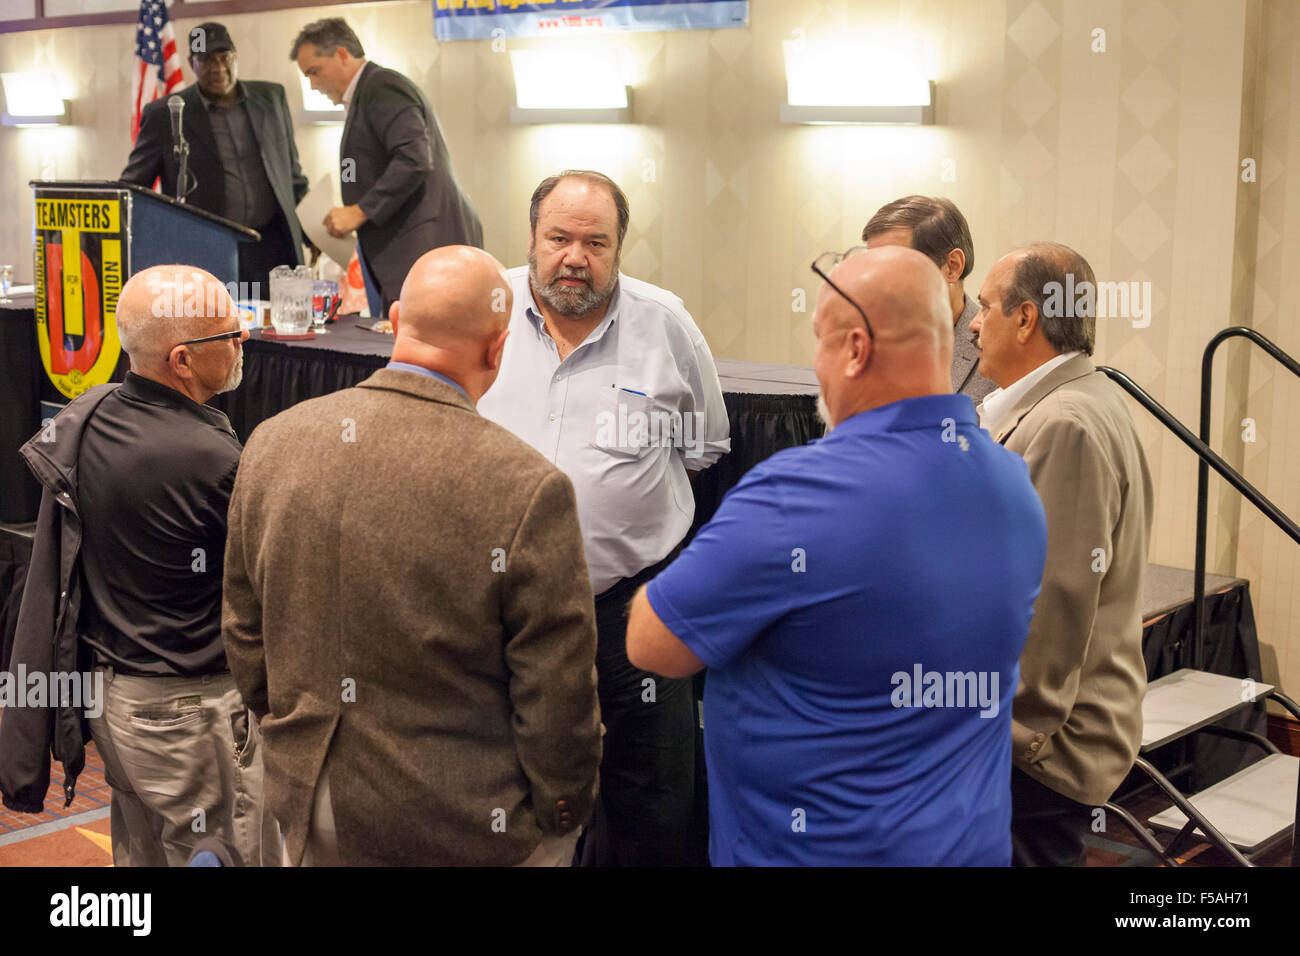 Cleveland, Ohio - Tim Sylvester (center), candidate for president of the Teamsters Union, talks with union members. - Stock Image